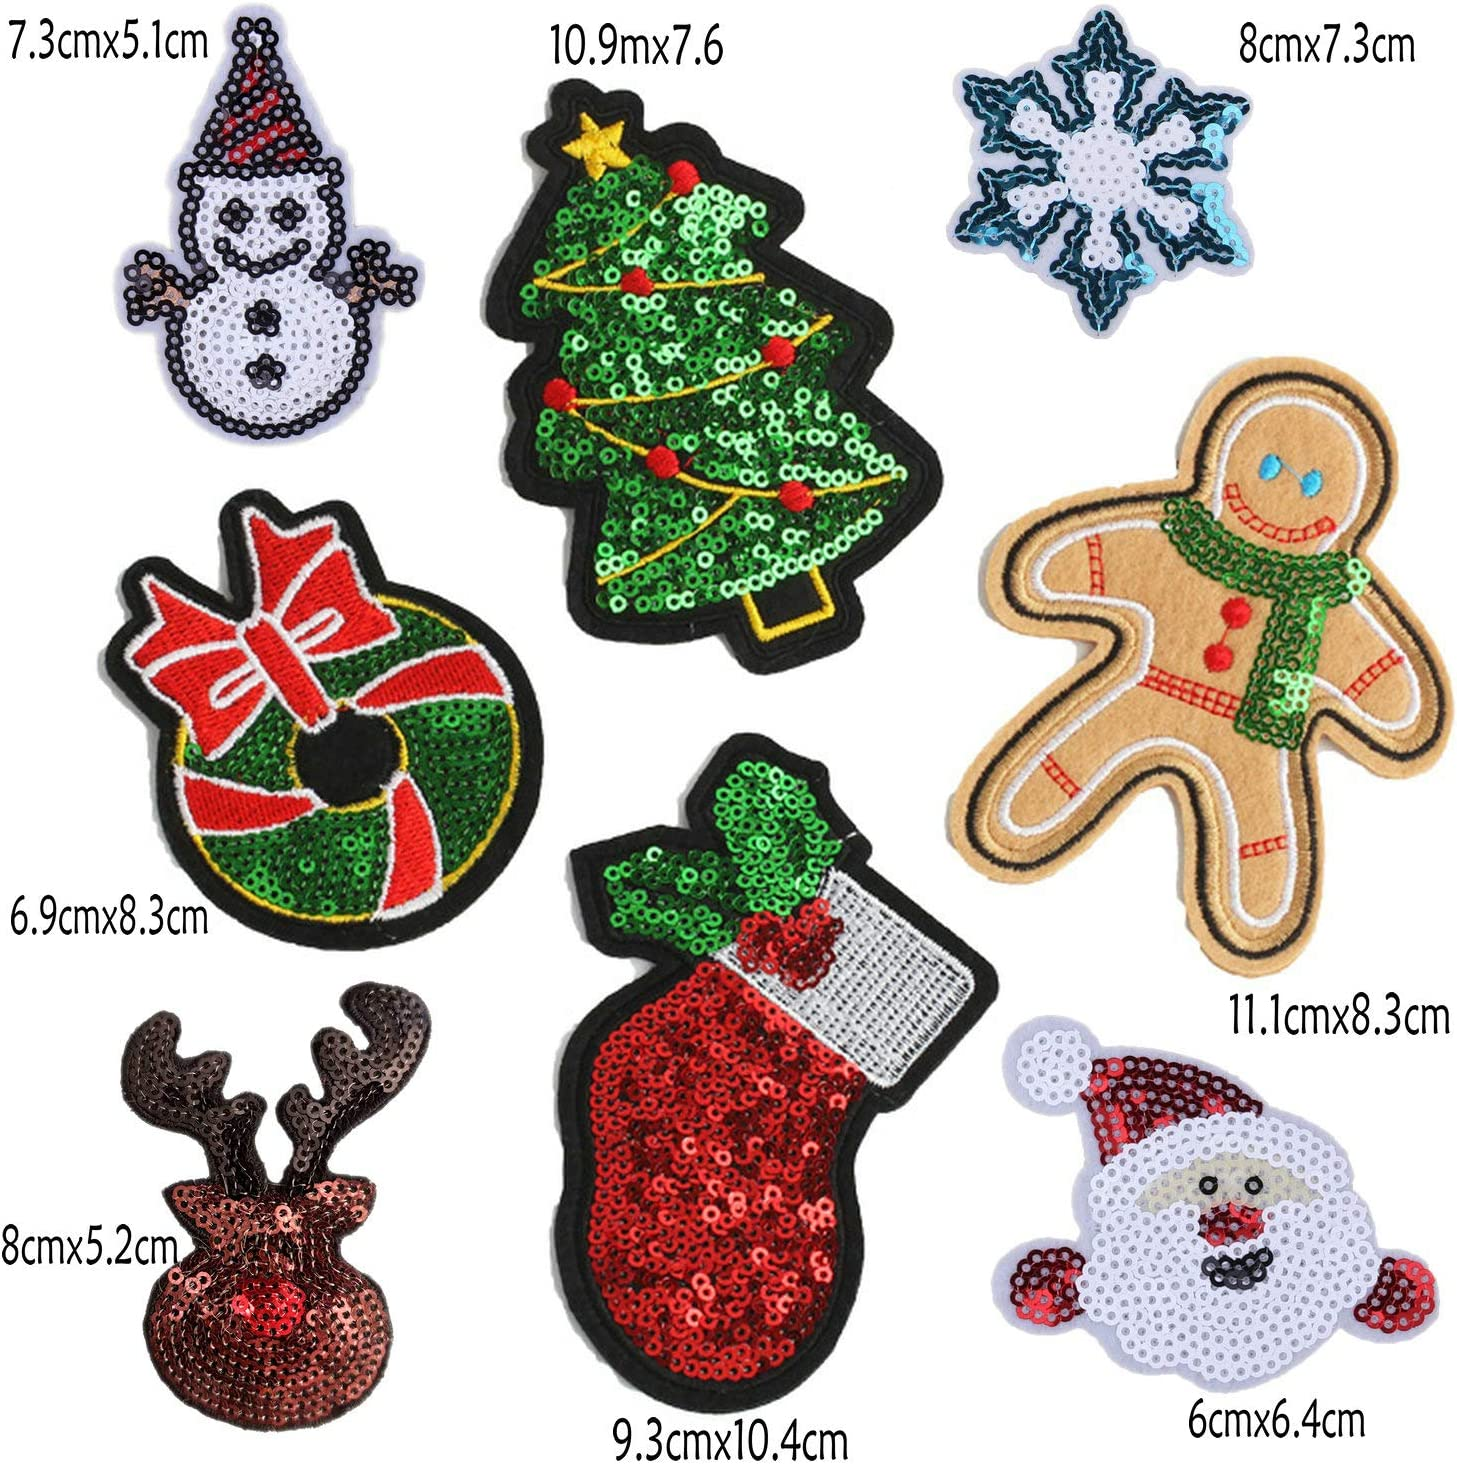 Christmas Tree Sew On Patches Snowman Sequin Santa Claus